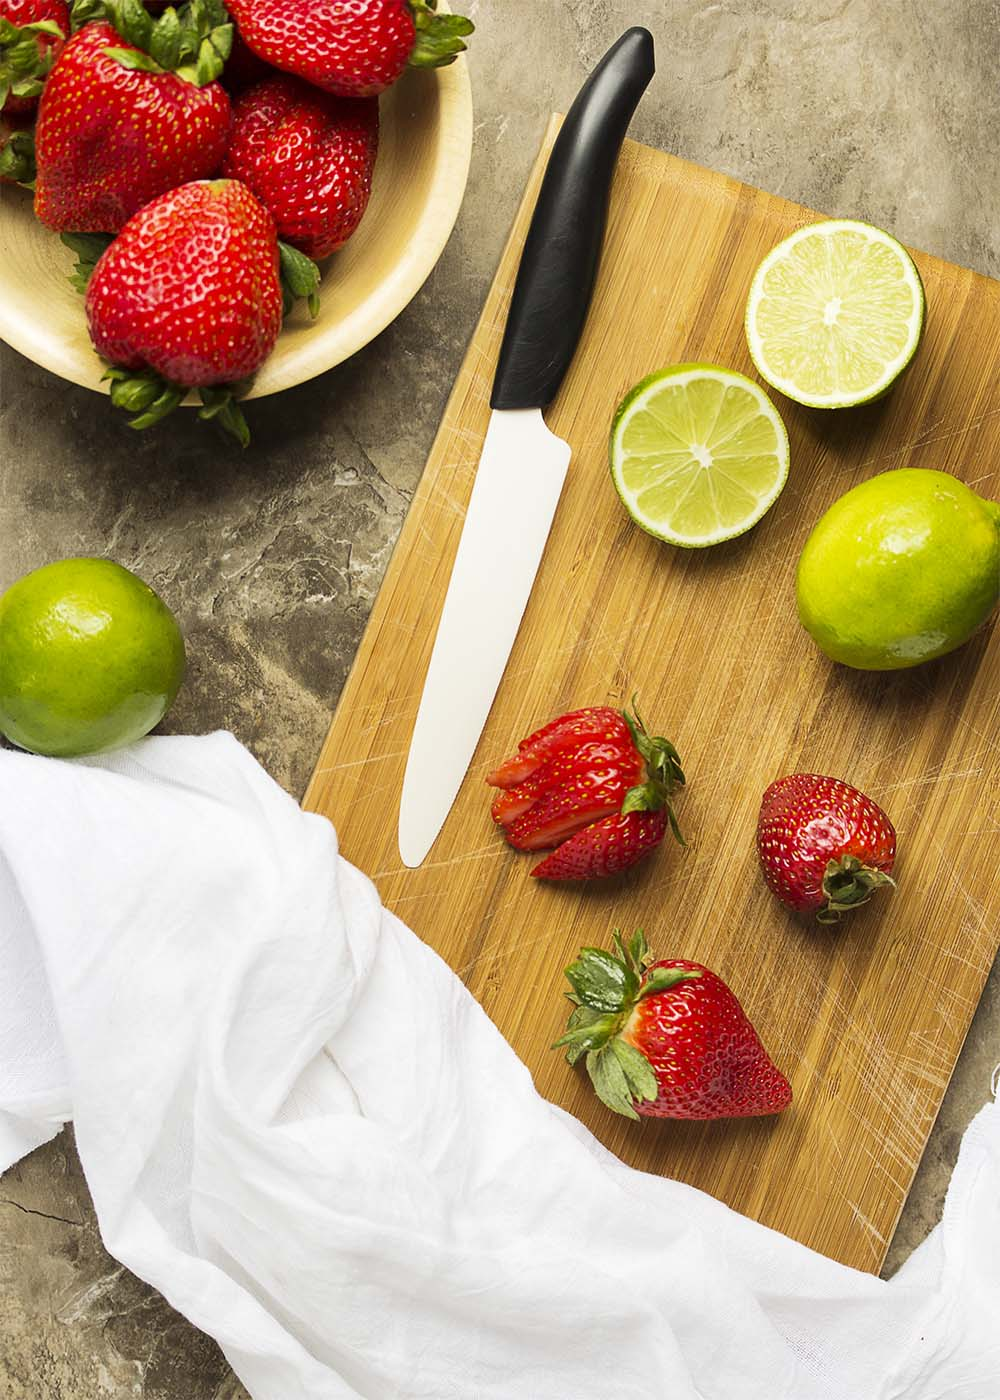 A cutting board with a knive showing how to make the garnishes for the daiquiri.